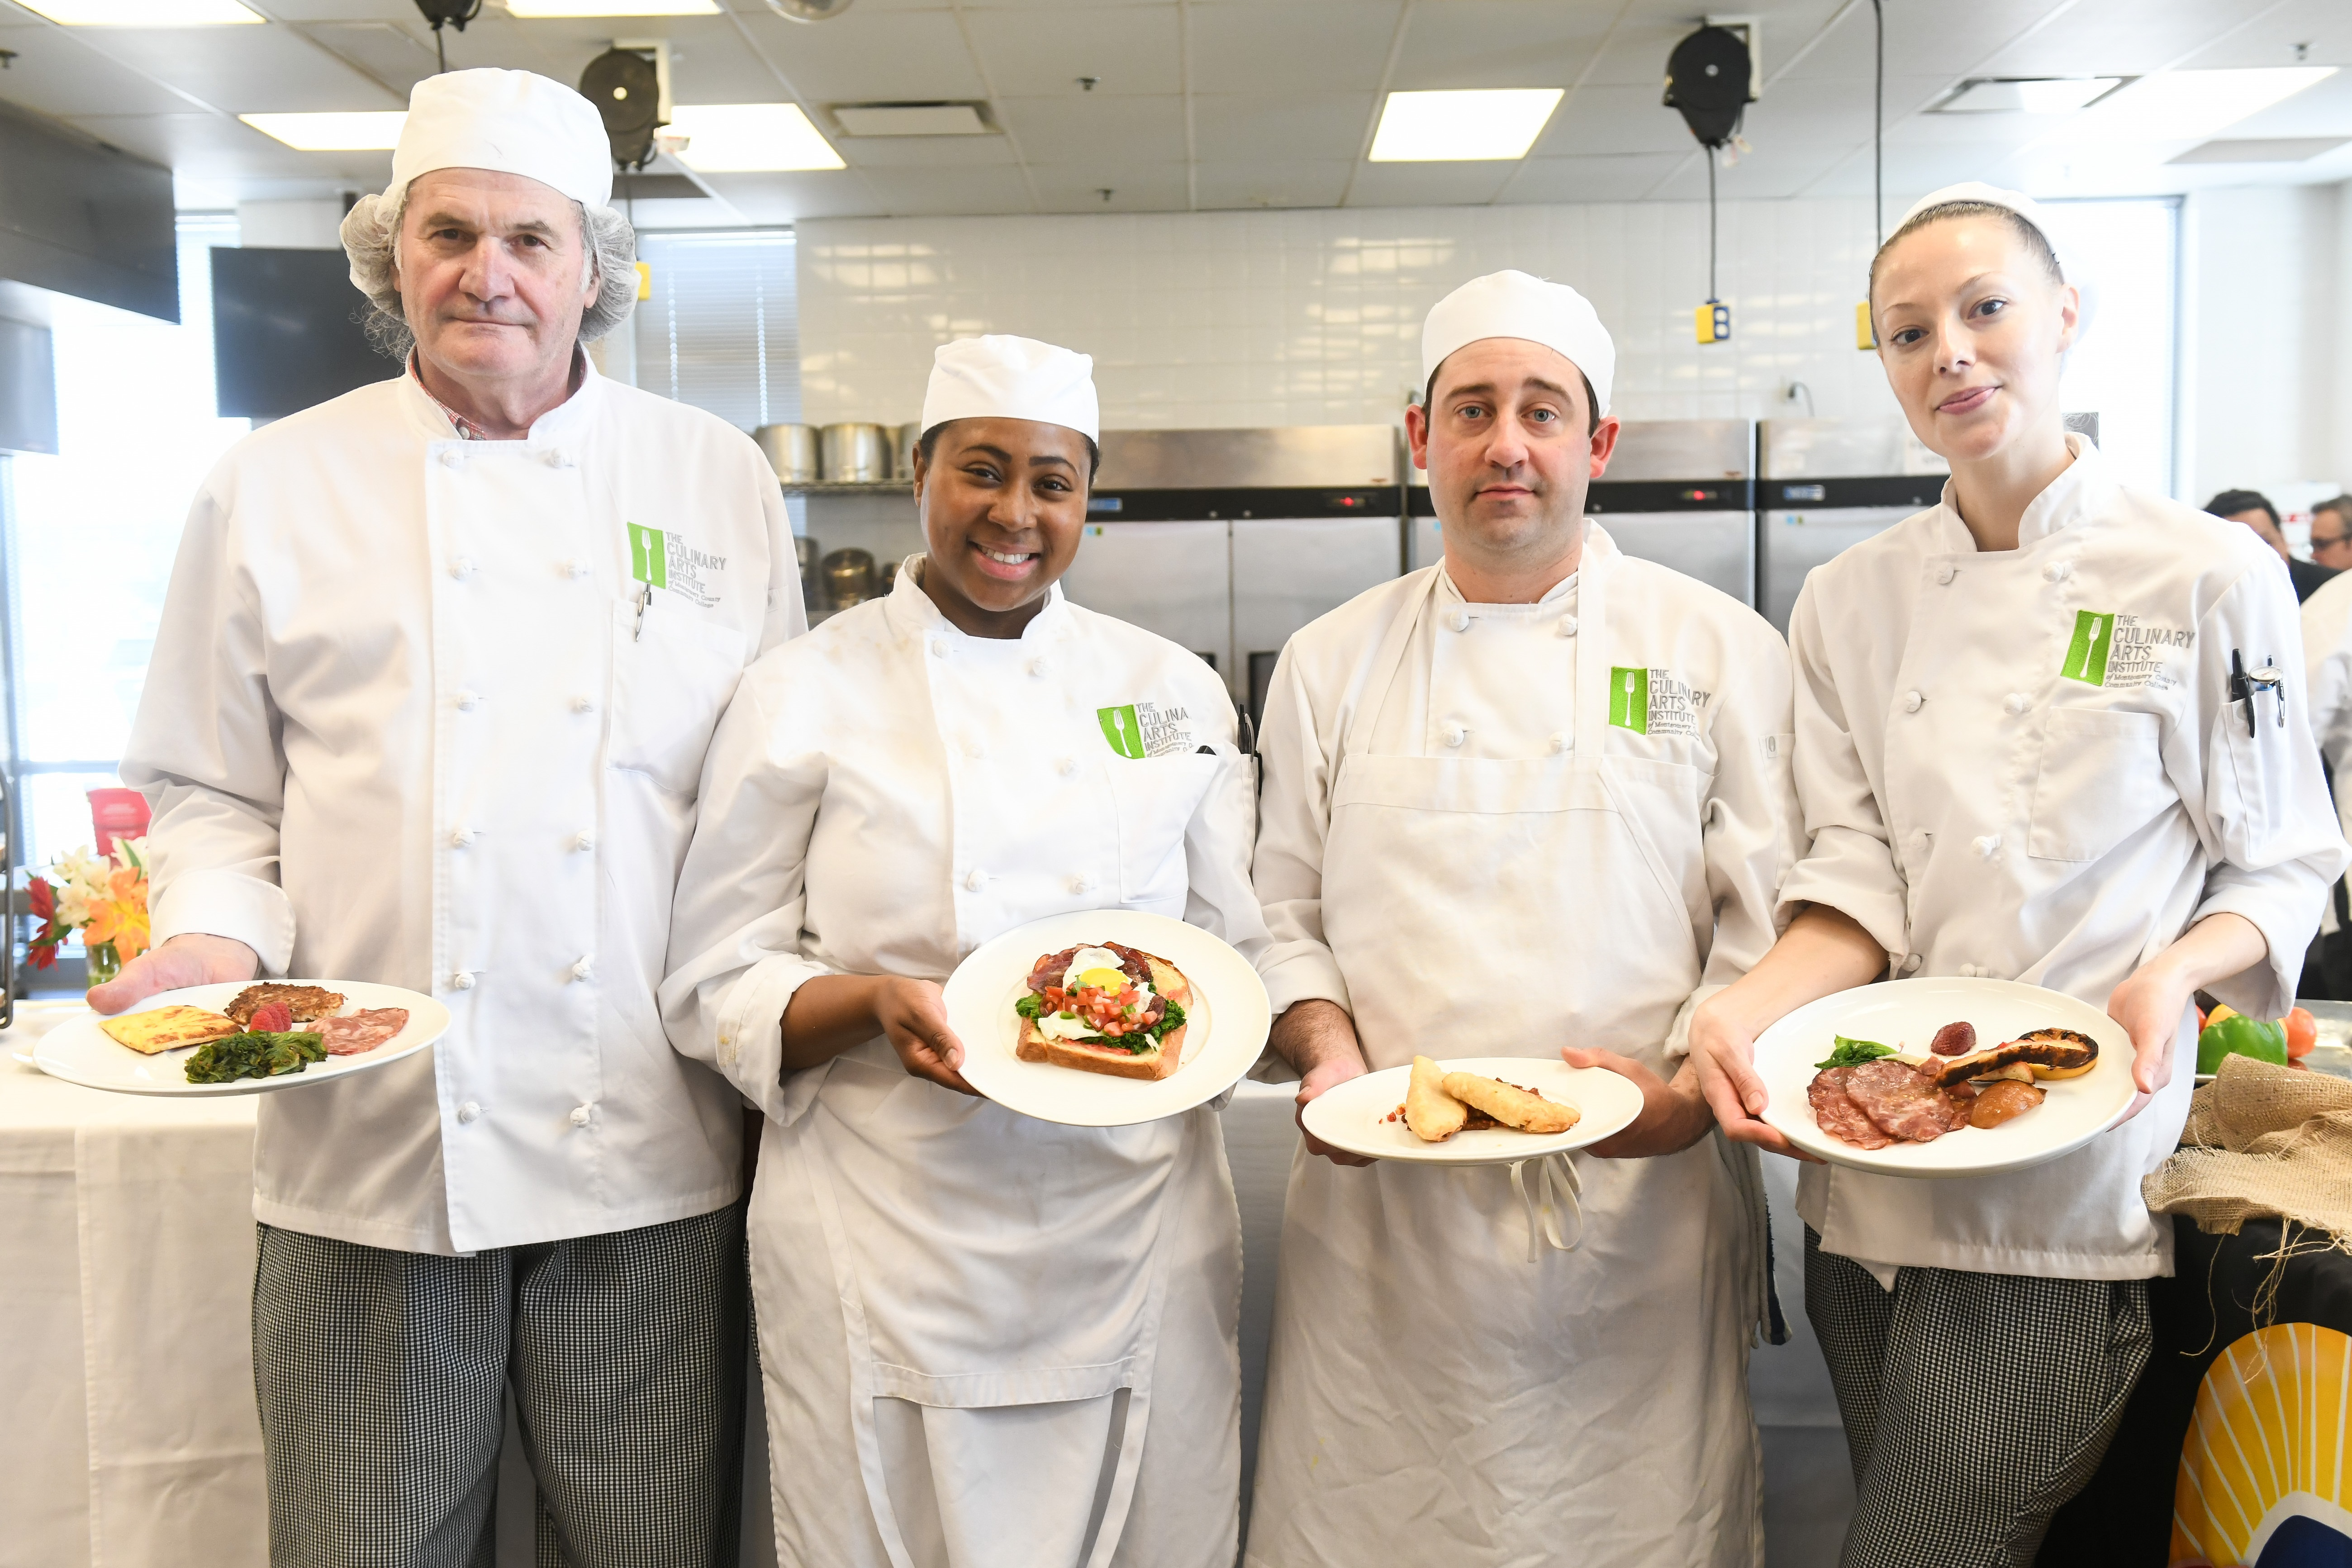 Students compete at Montgomery County Community College Culinary Arts Institute